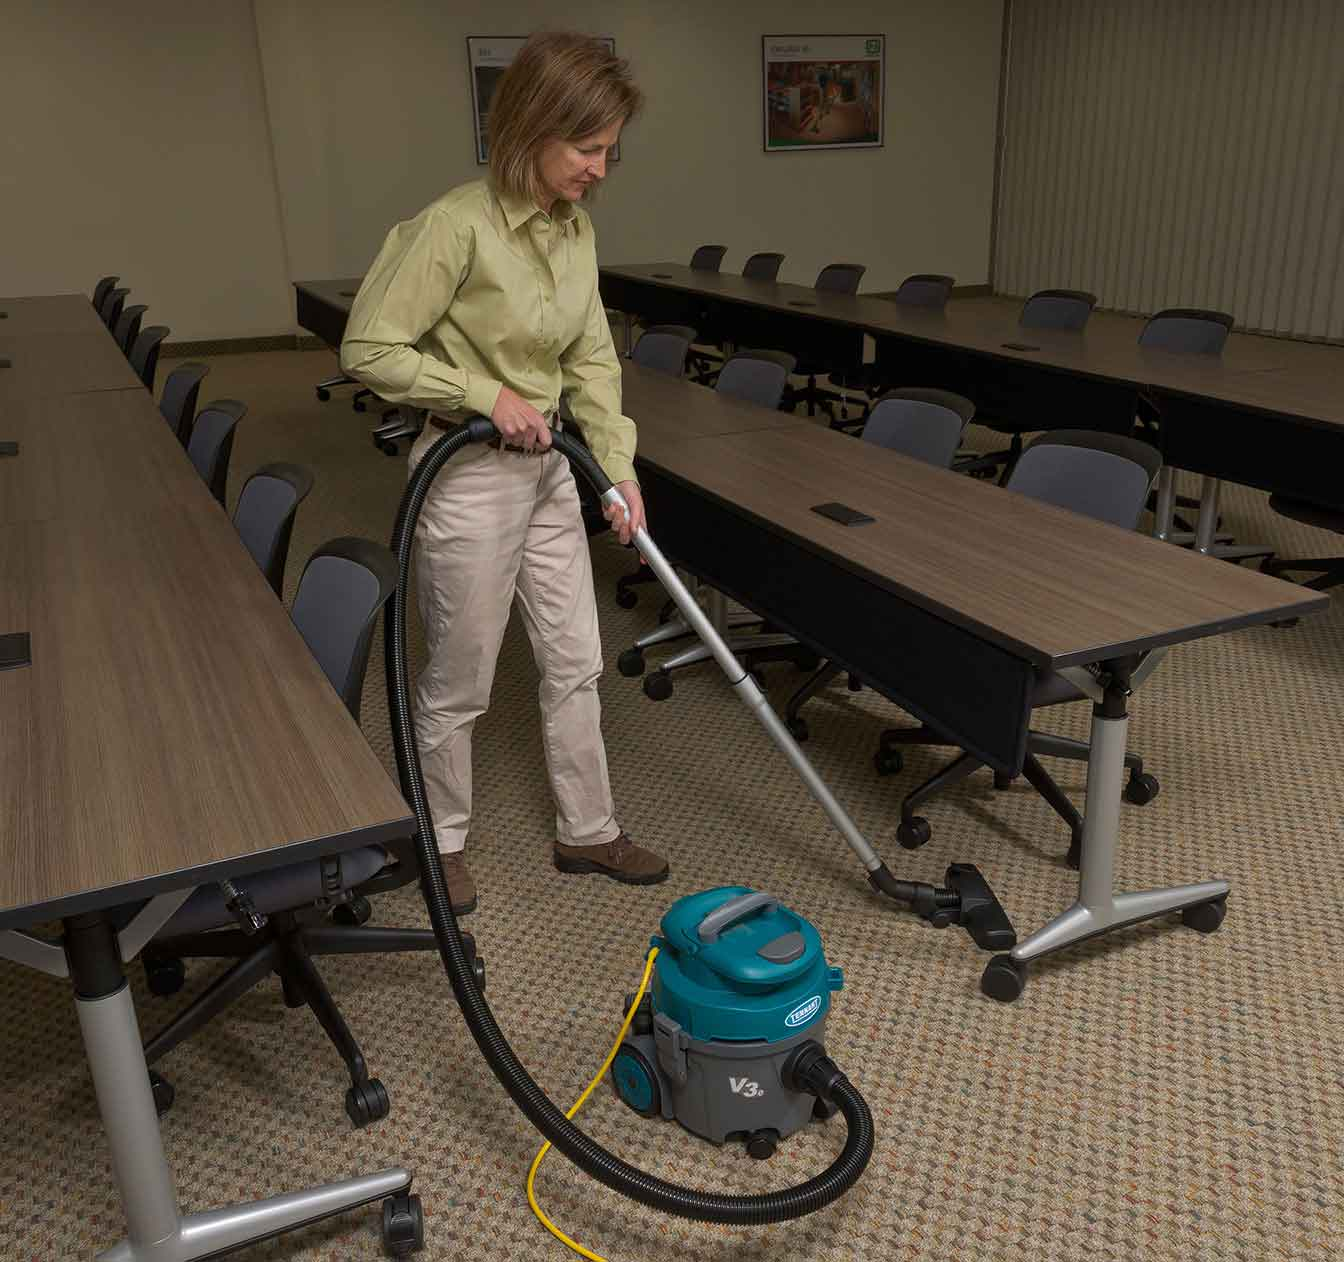 V3e Canister Vacuum cleaning a conference room floor.